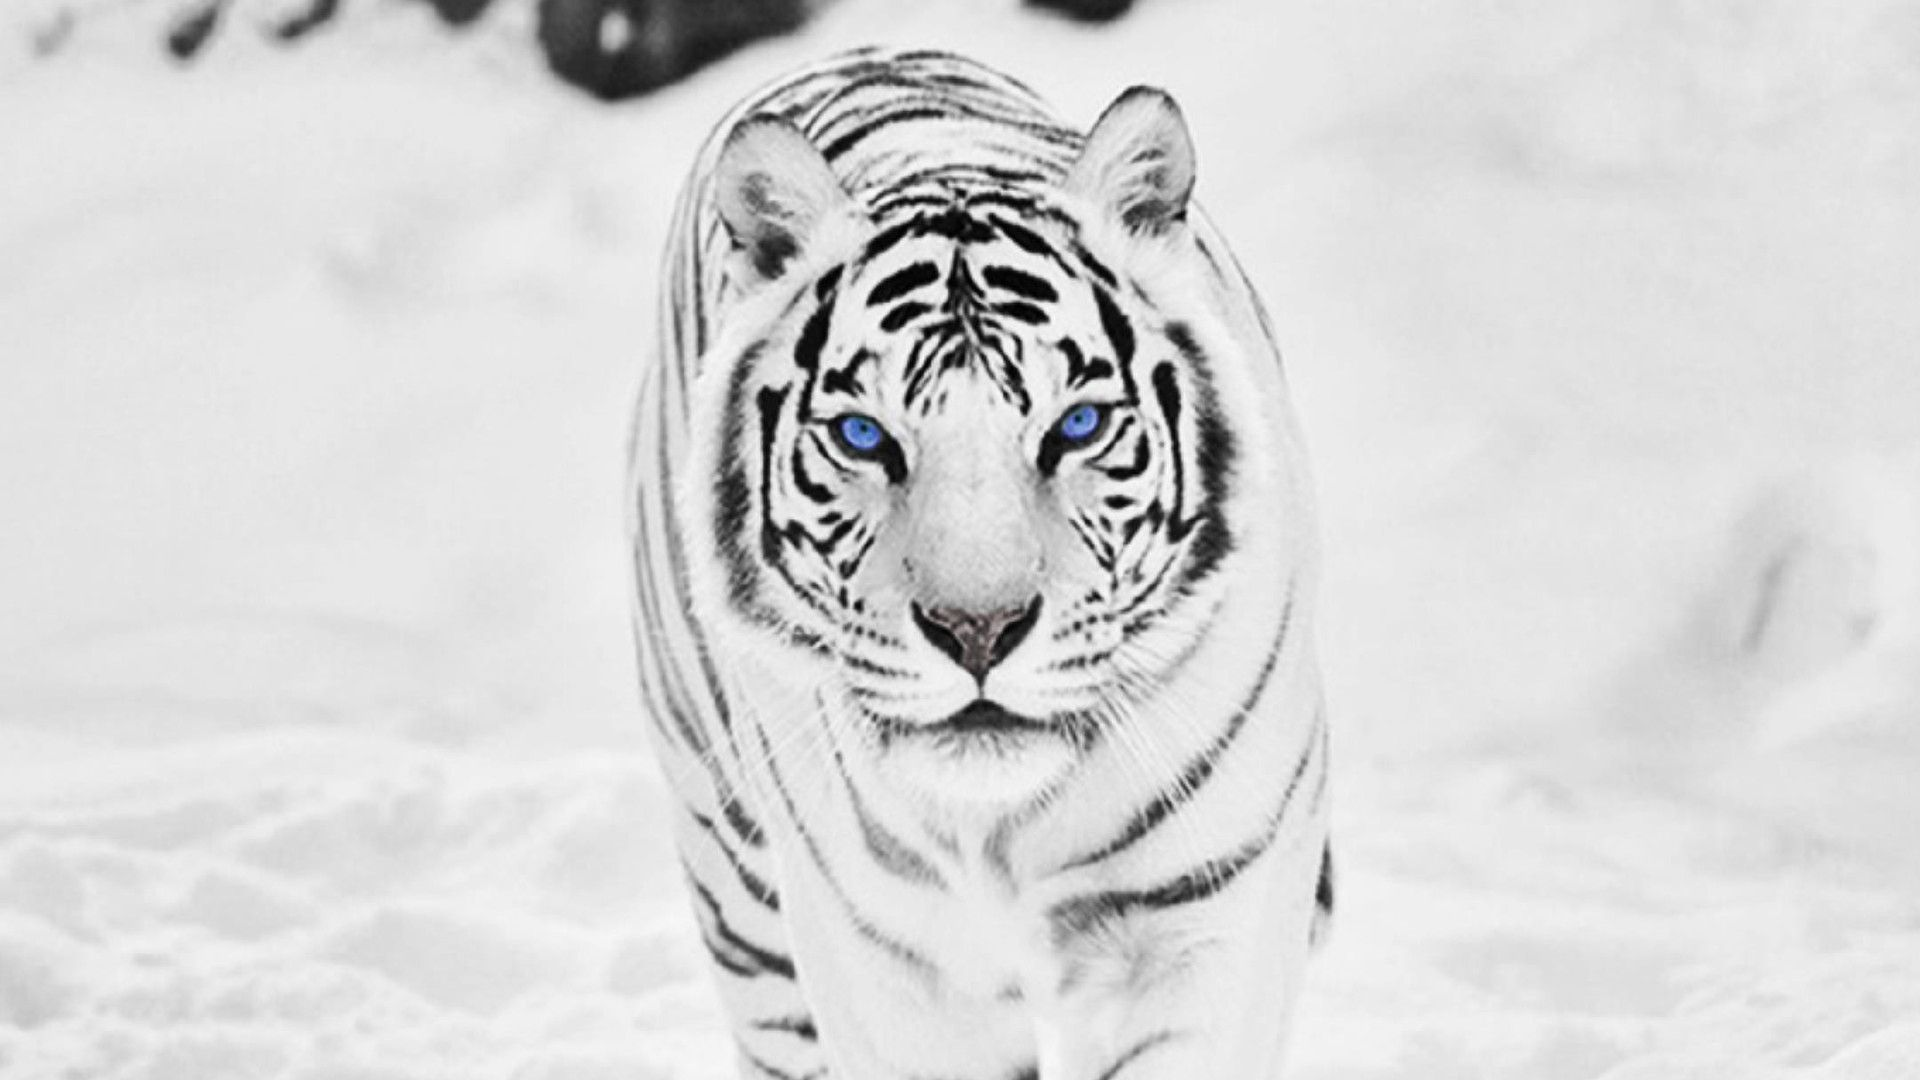 Snow Tiger Wallpapers   Top Snow Tiger Backgrounds 1920x1080